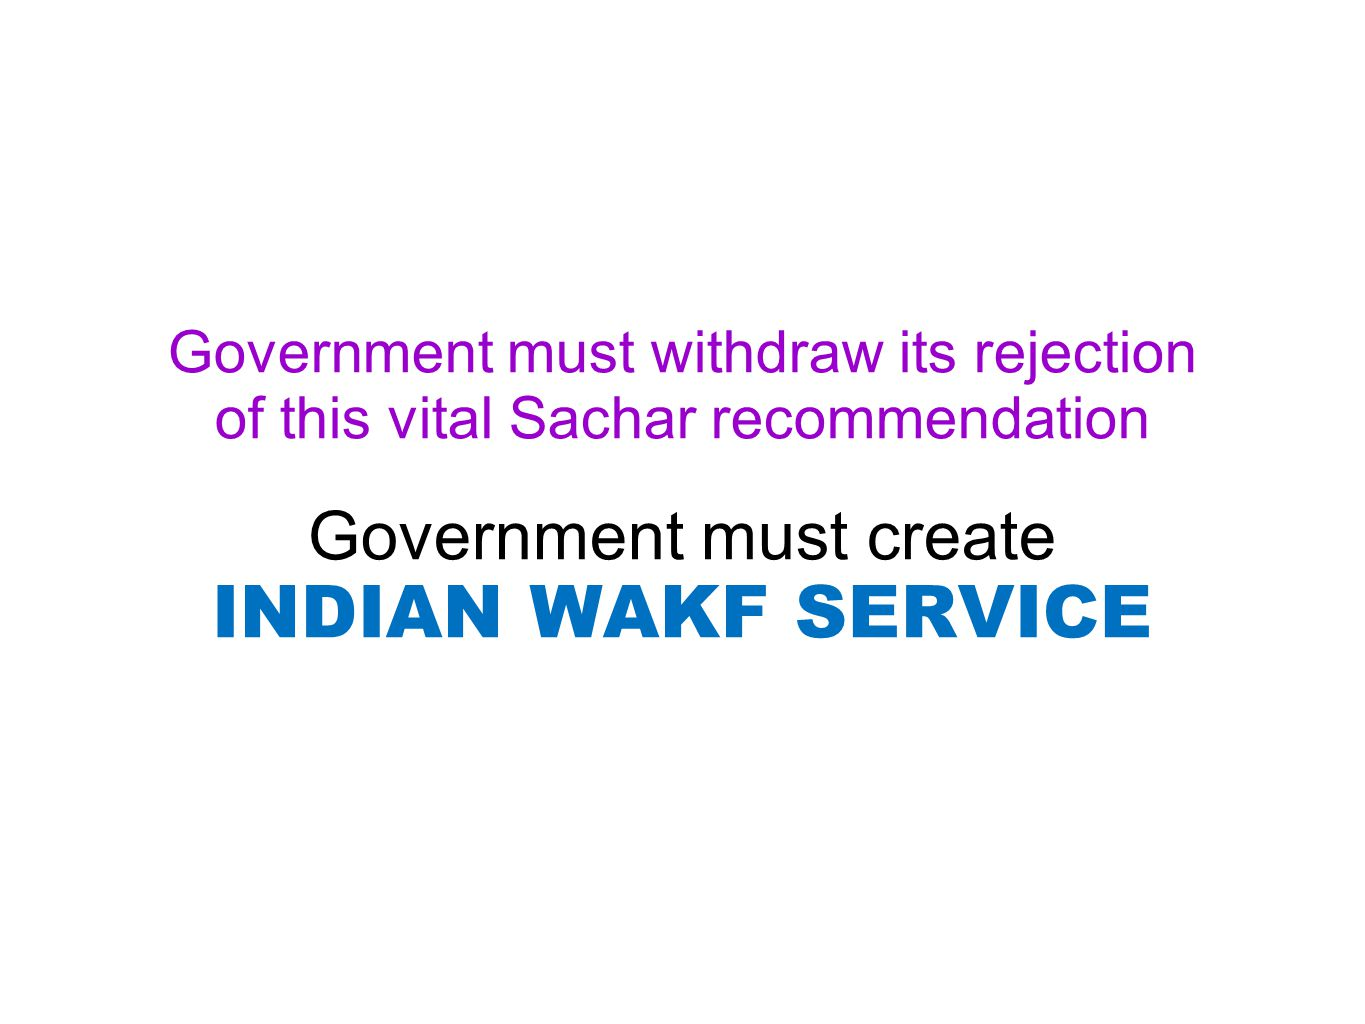 Government must withdraw its rejection of this vital Sachar recommendation Government must create INDIAN WAKF SERVICE